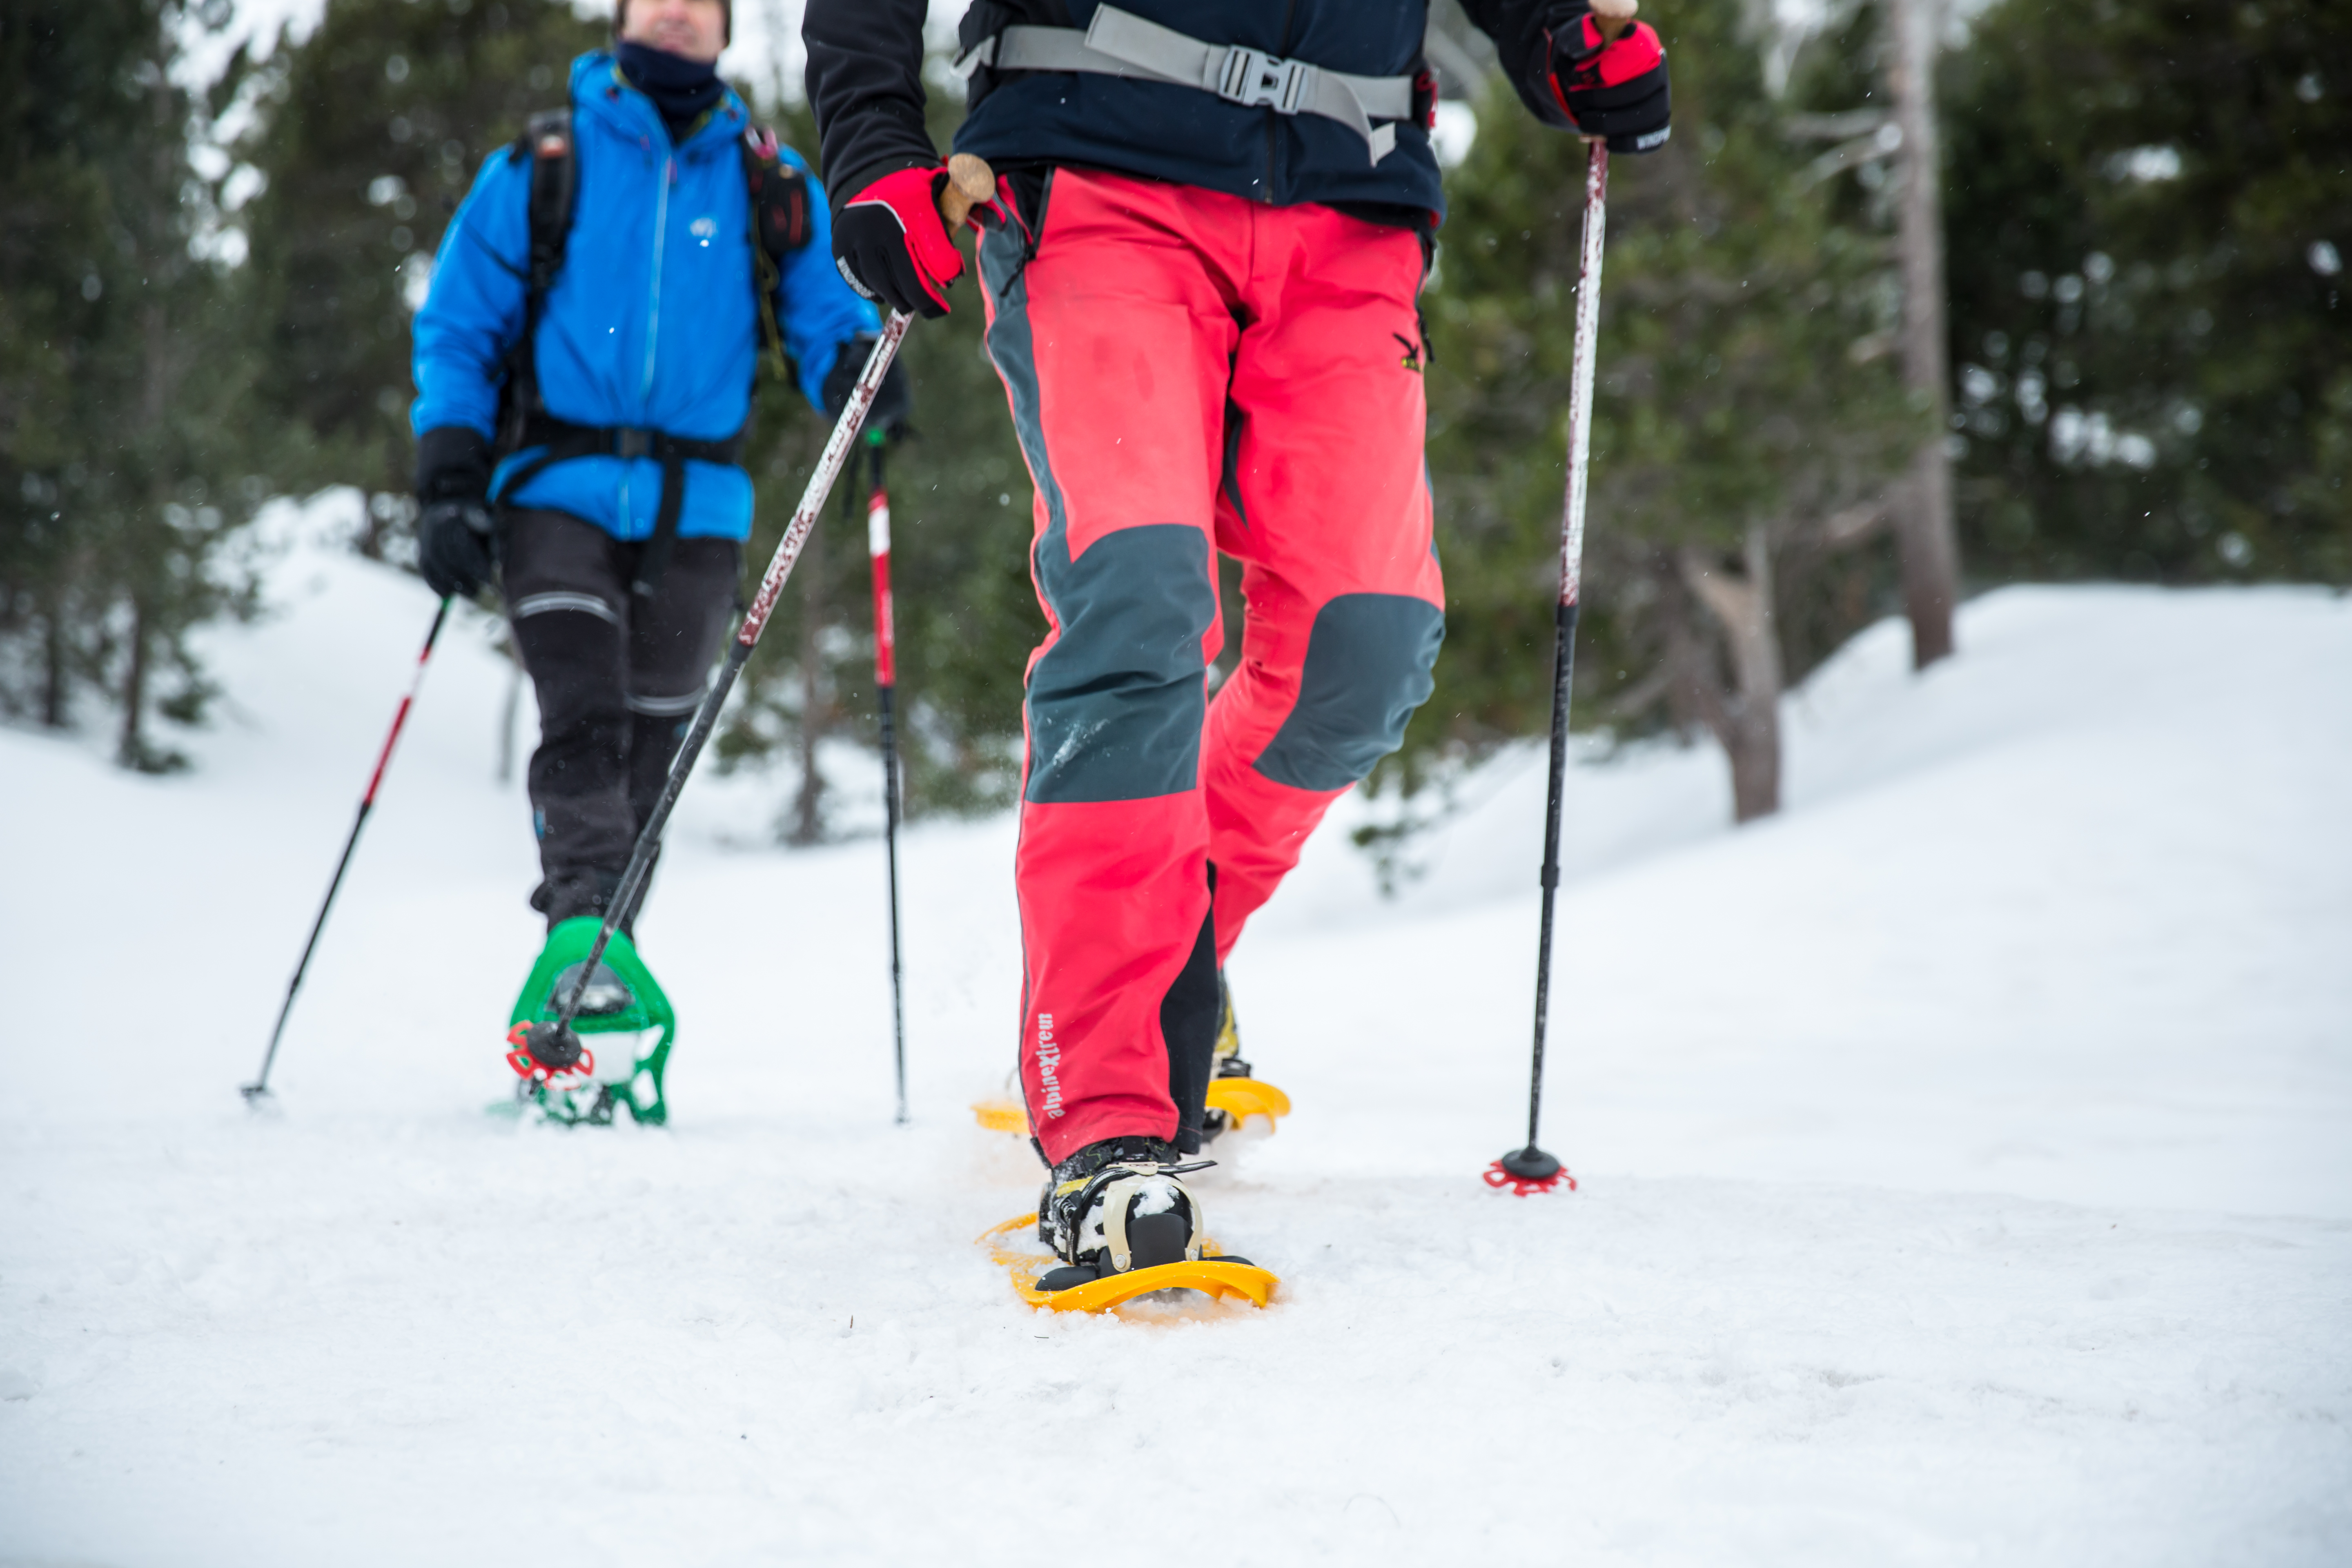 Snowshoeing excursions, sport and nature in their purest form.